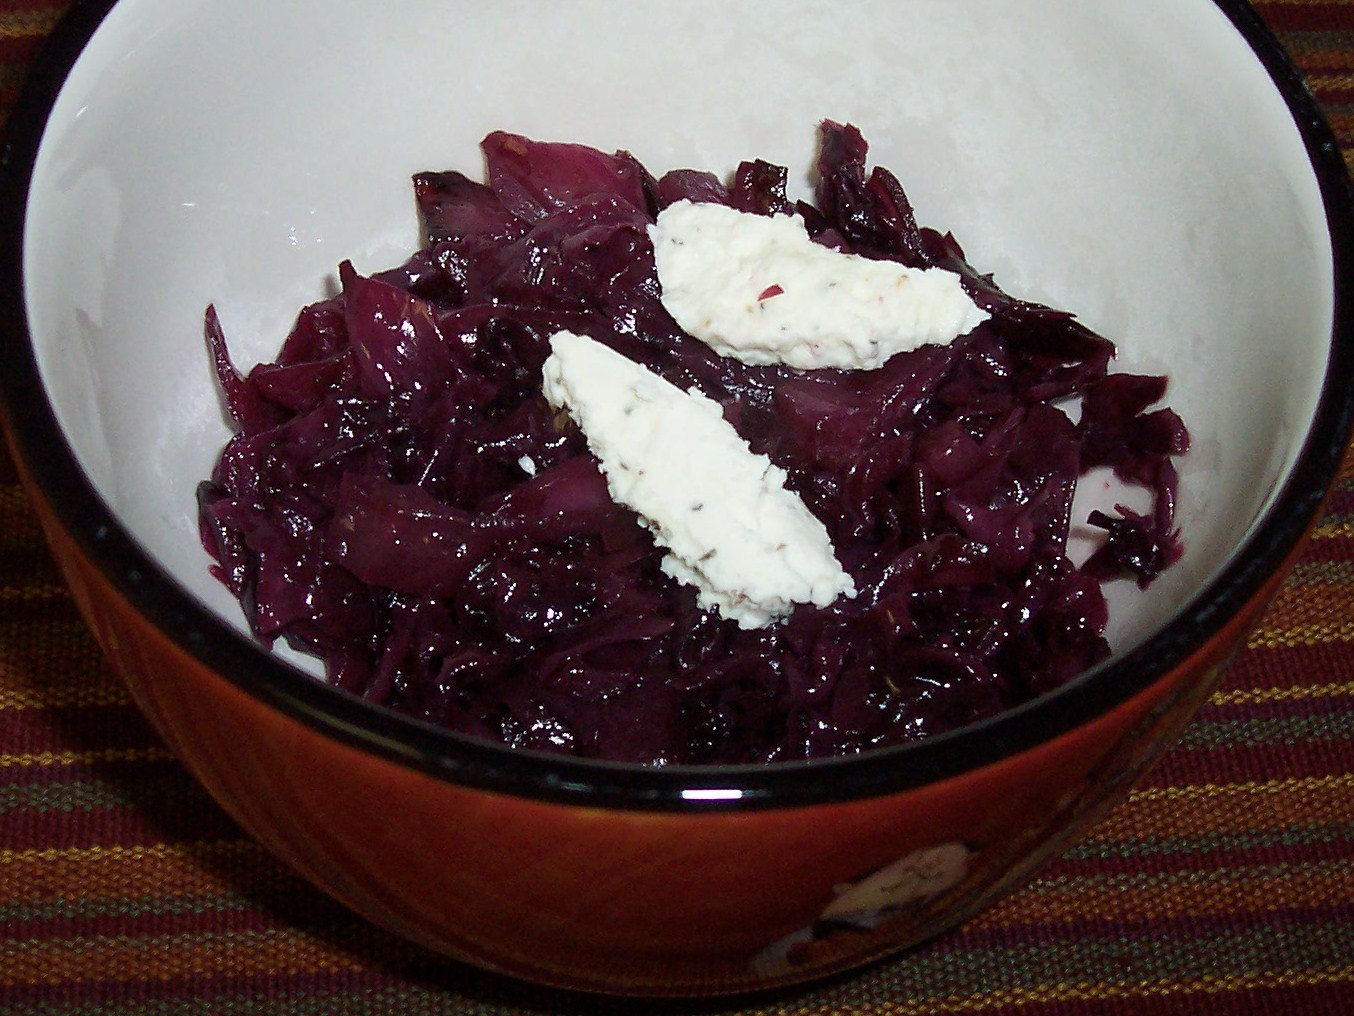 braised red cabbage recipe - photo #13